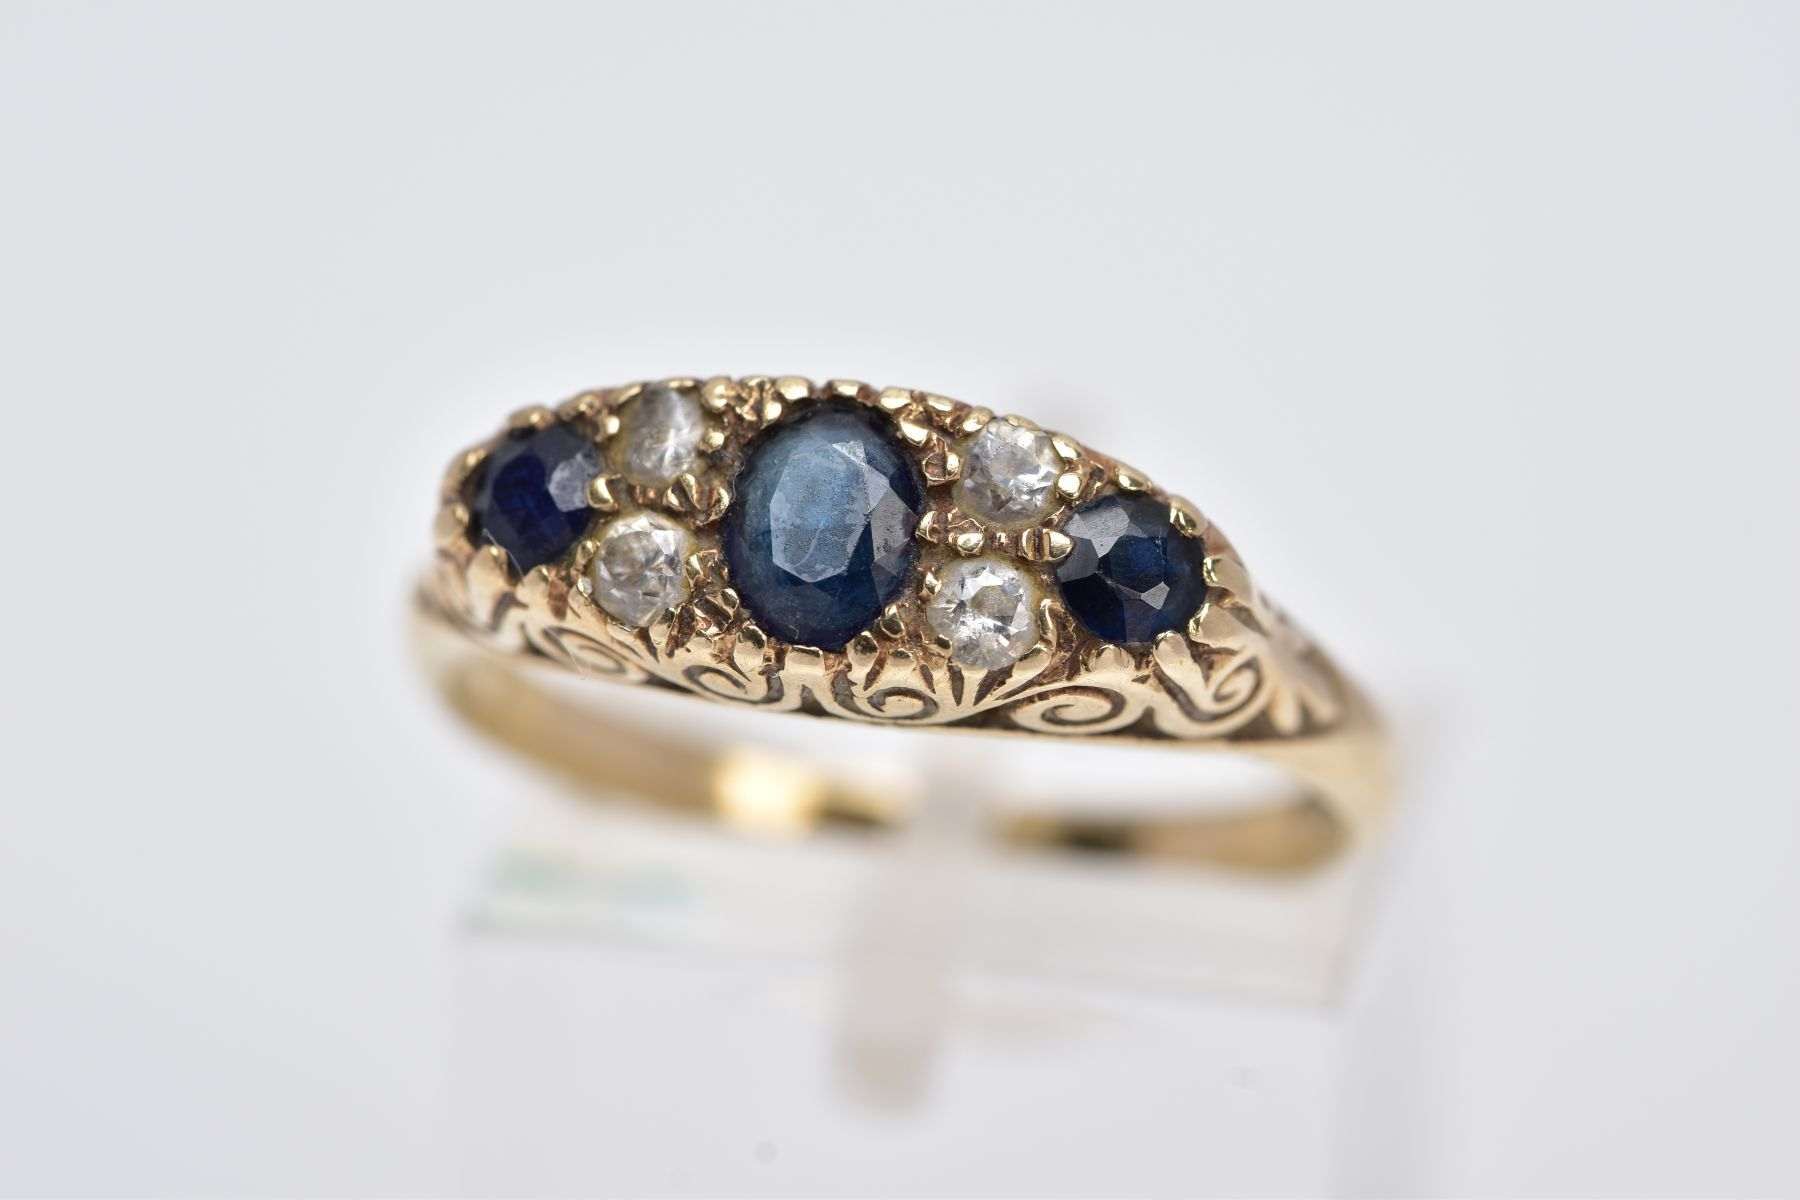 A 9CT GOLD SAPPPHIRE AND PASTE RING, centring on an oval cut blue sapphire flanked with colourless